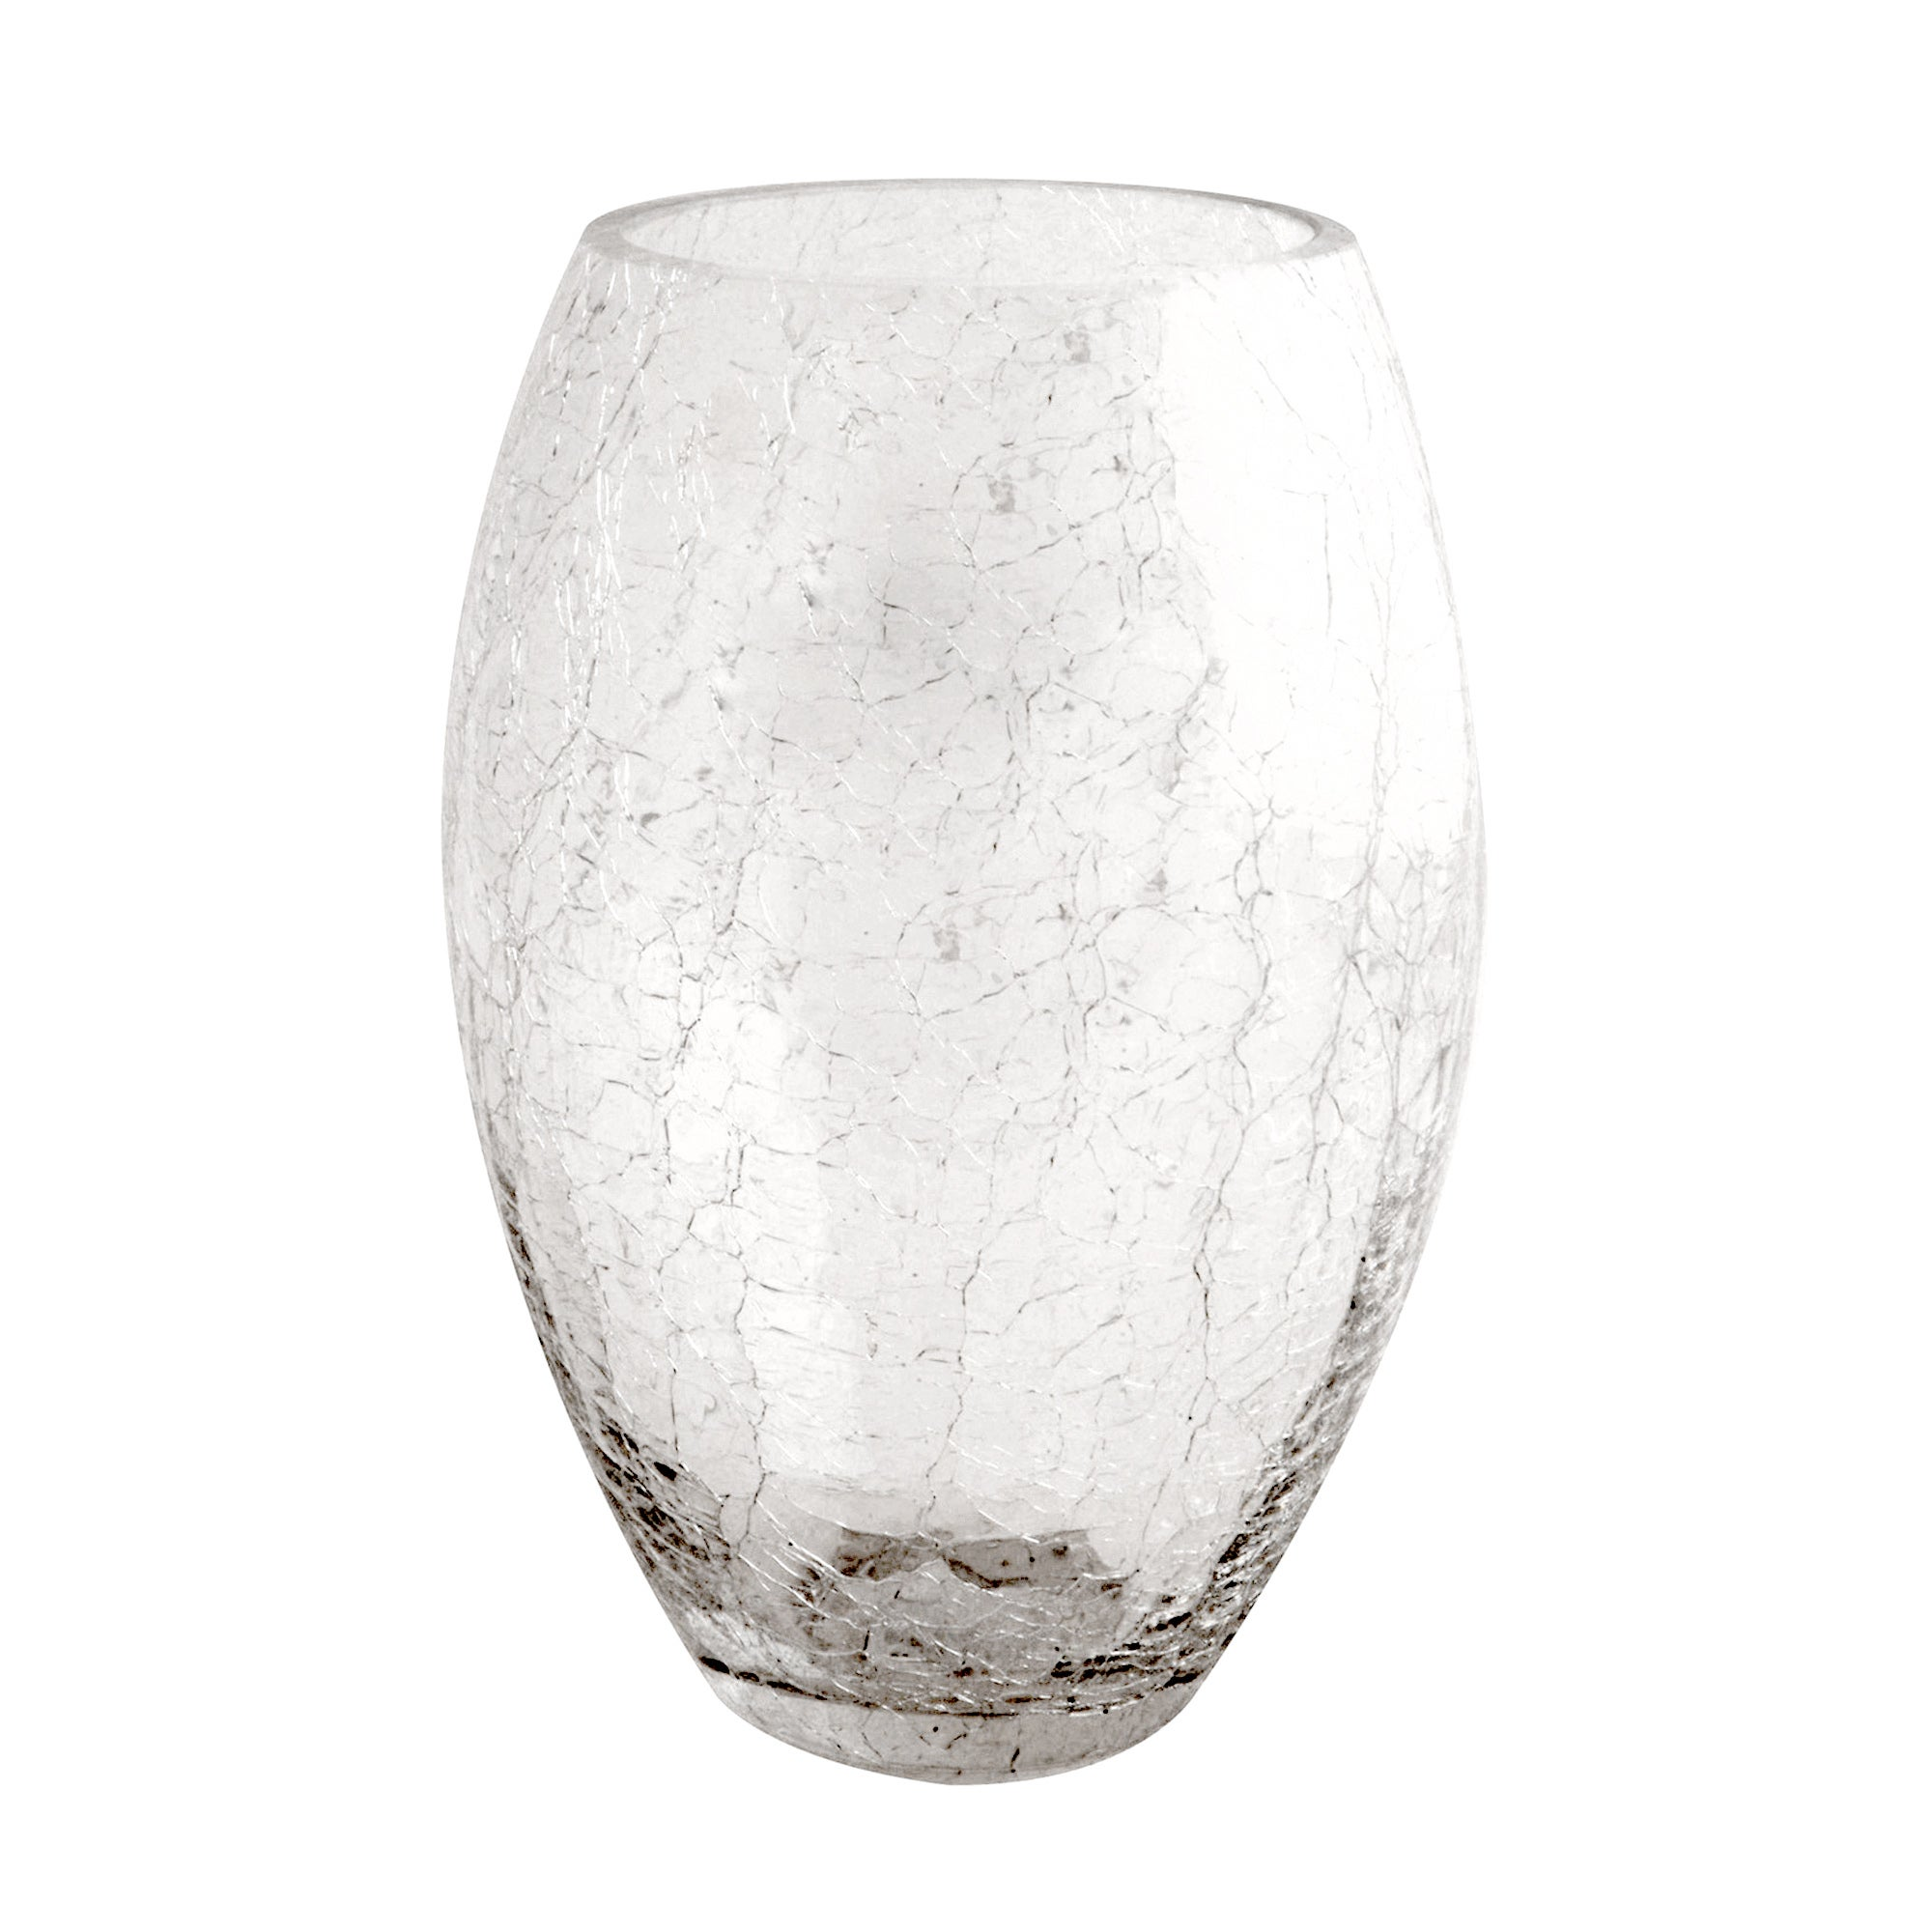 Photo of Crackle glass vase clear